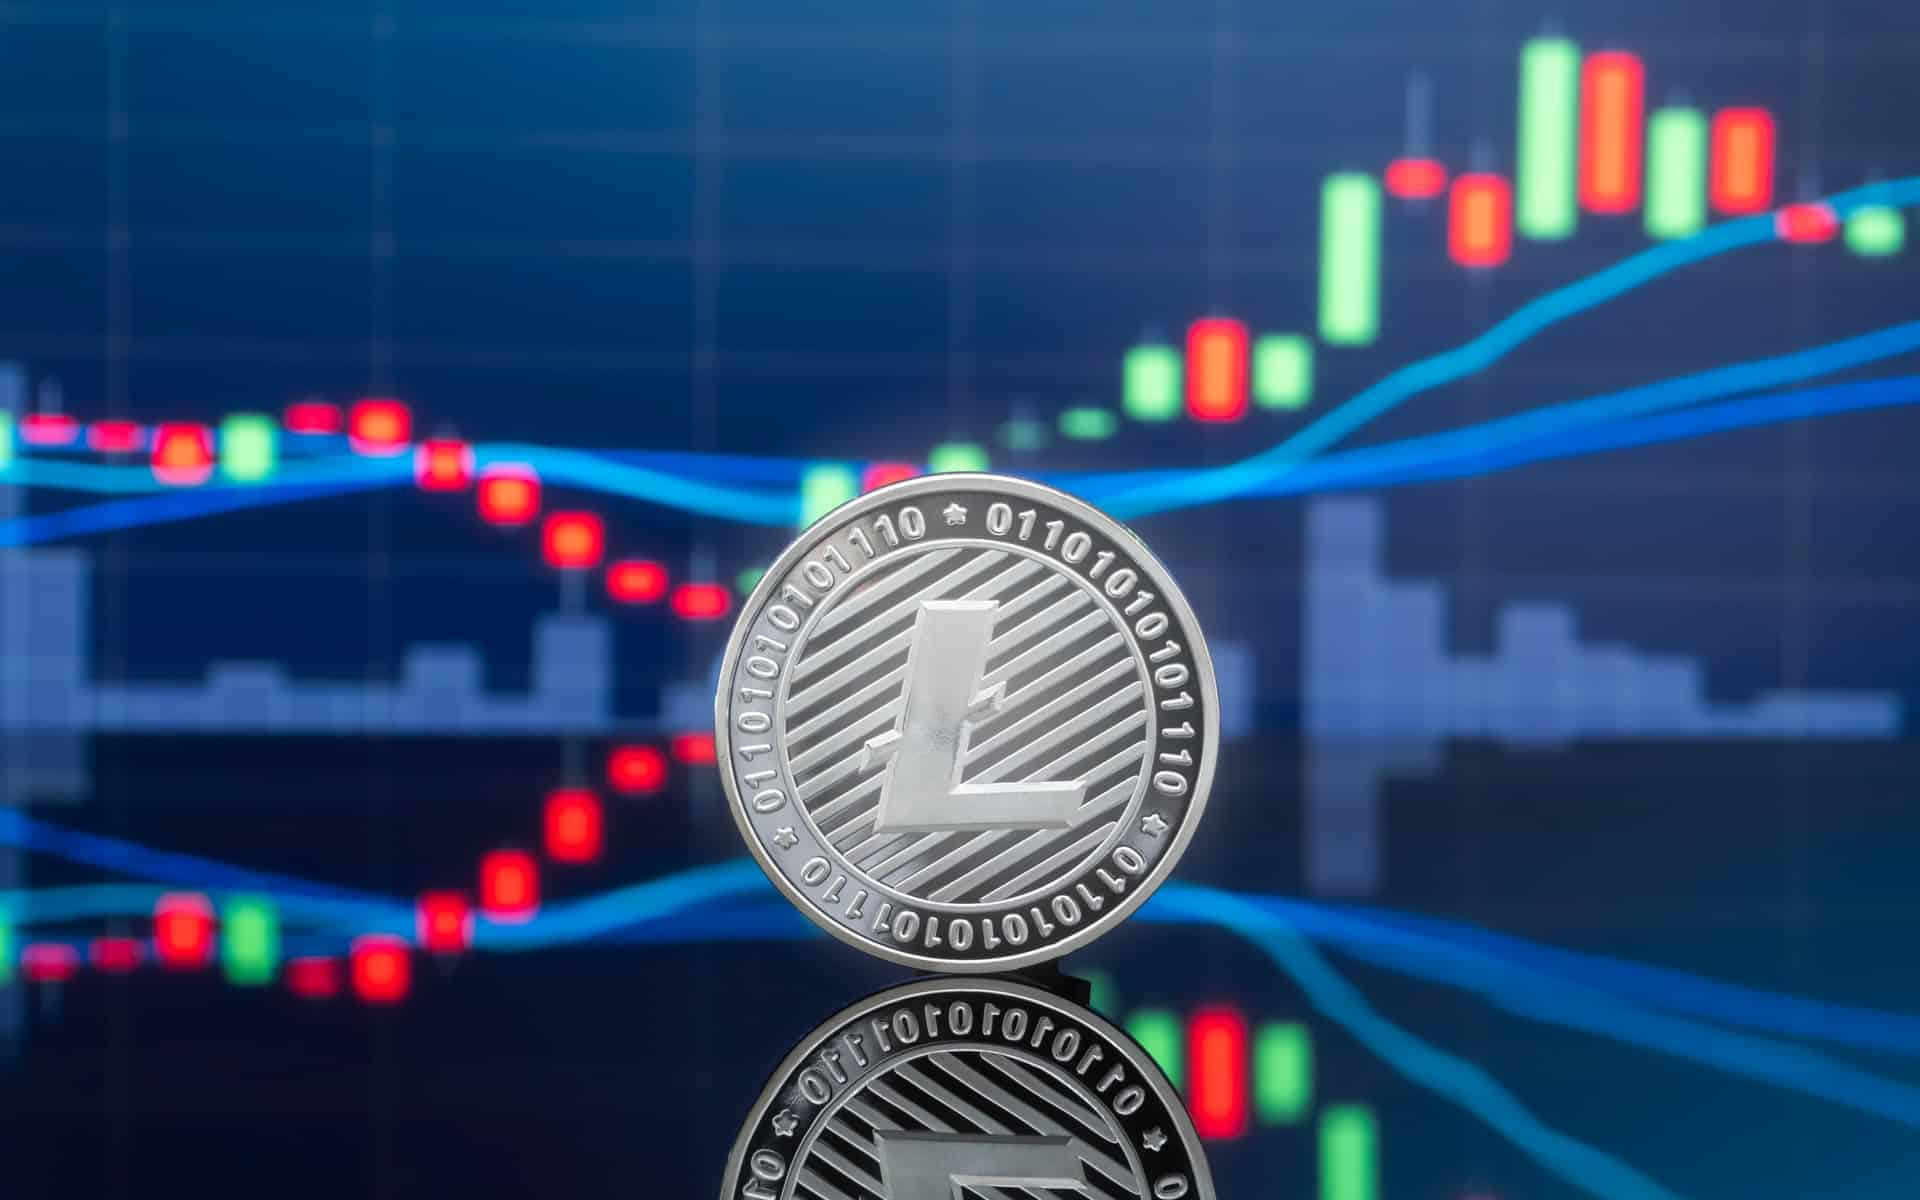 Litecoin Price Prediction and Forecast: Can Litecoin maintain support of $164?